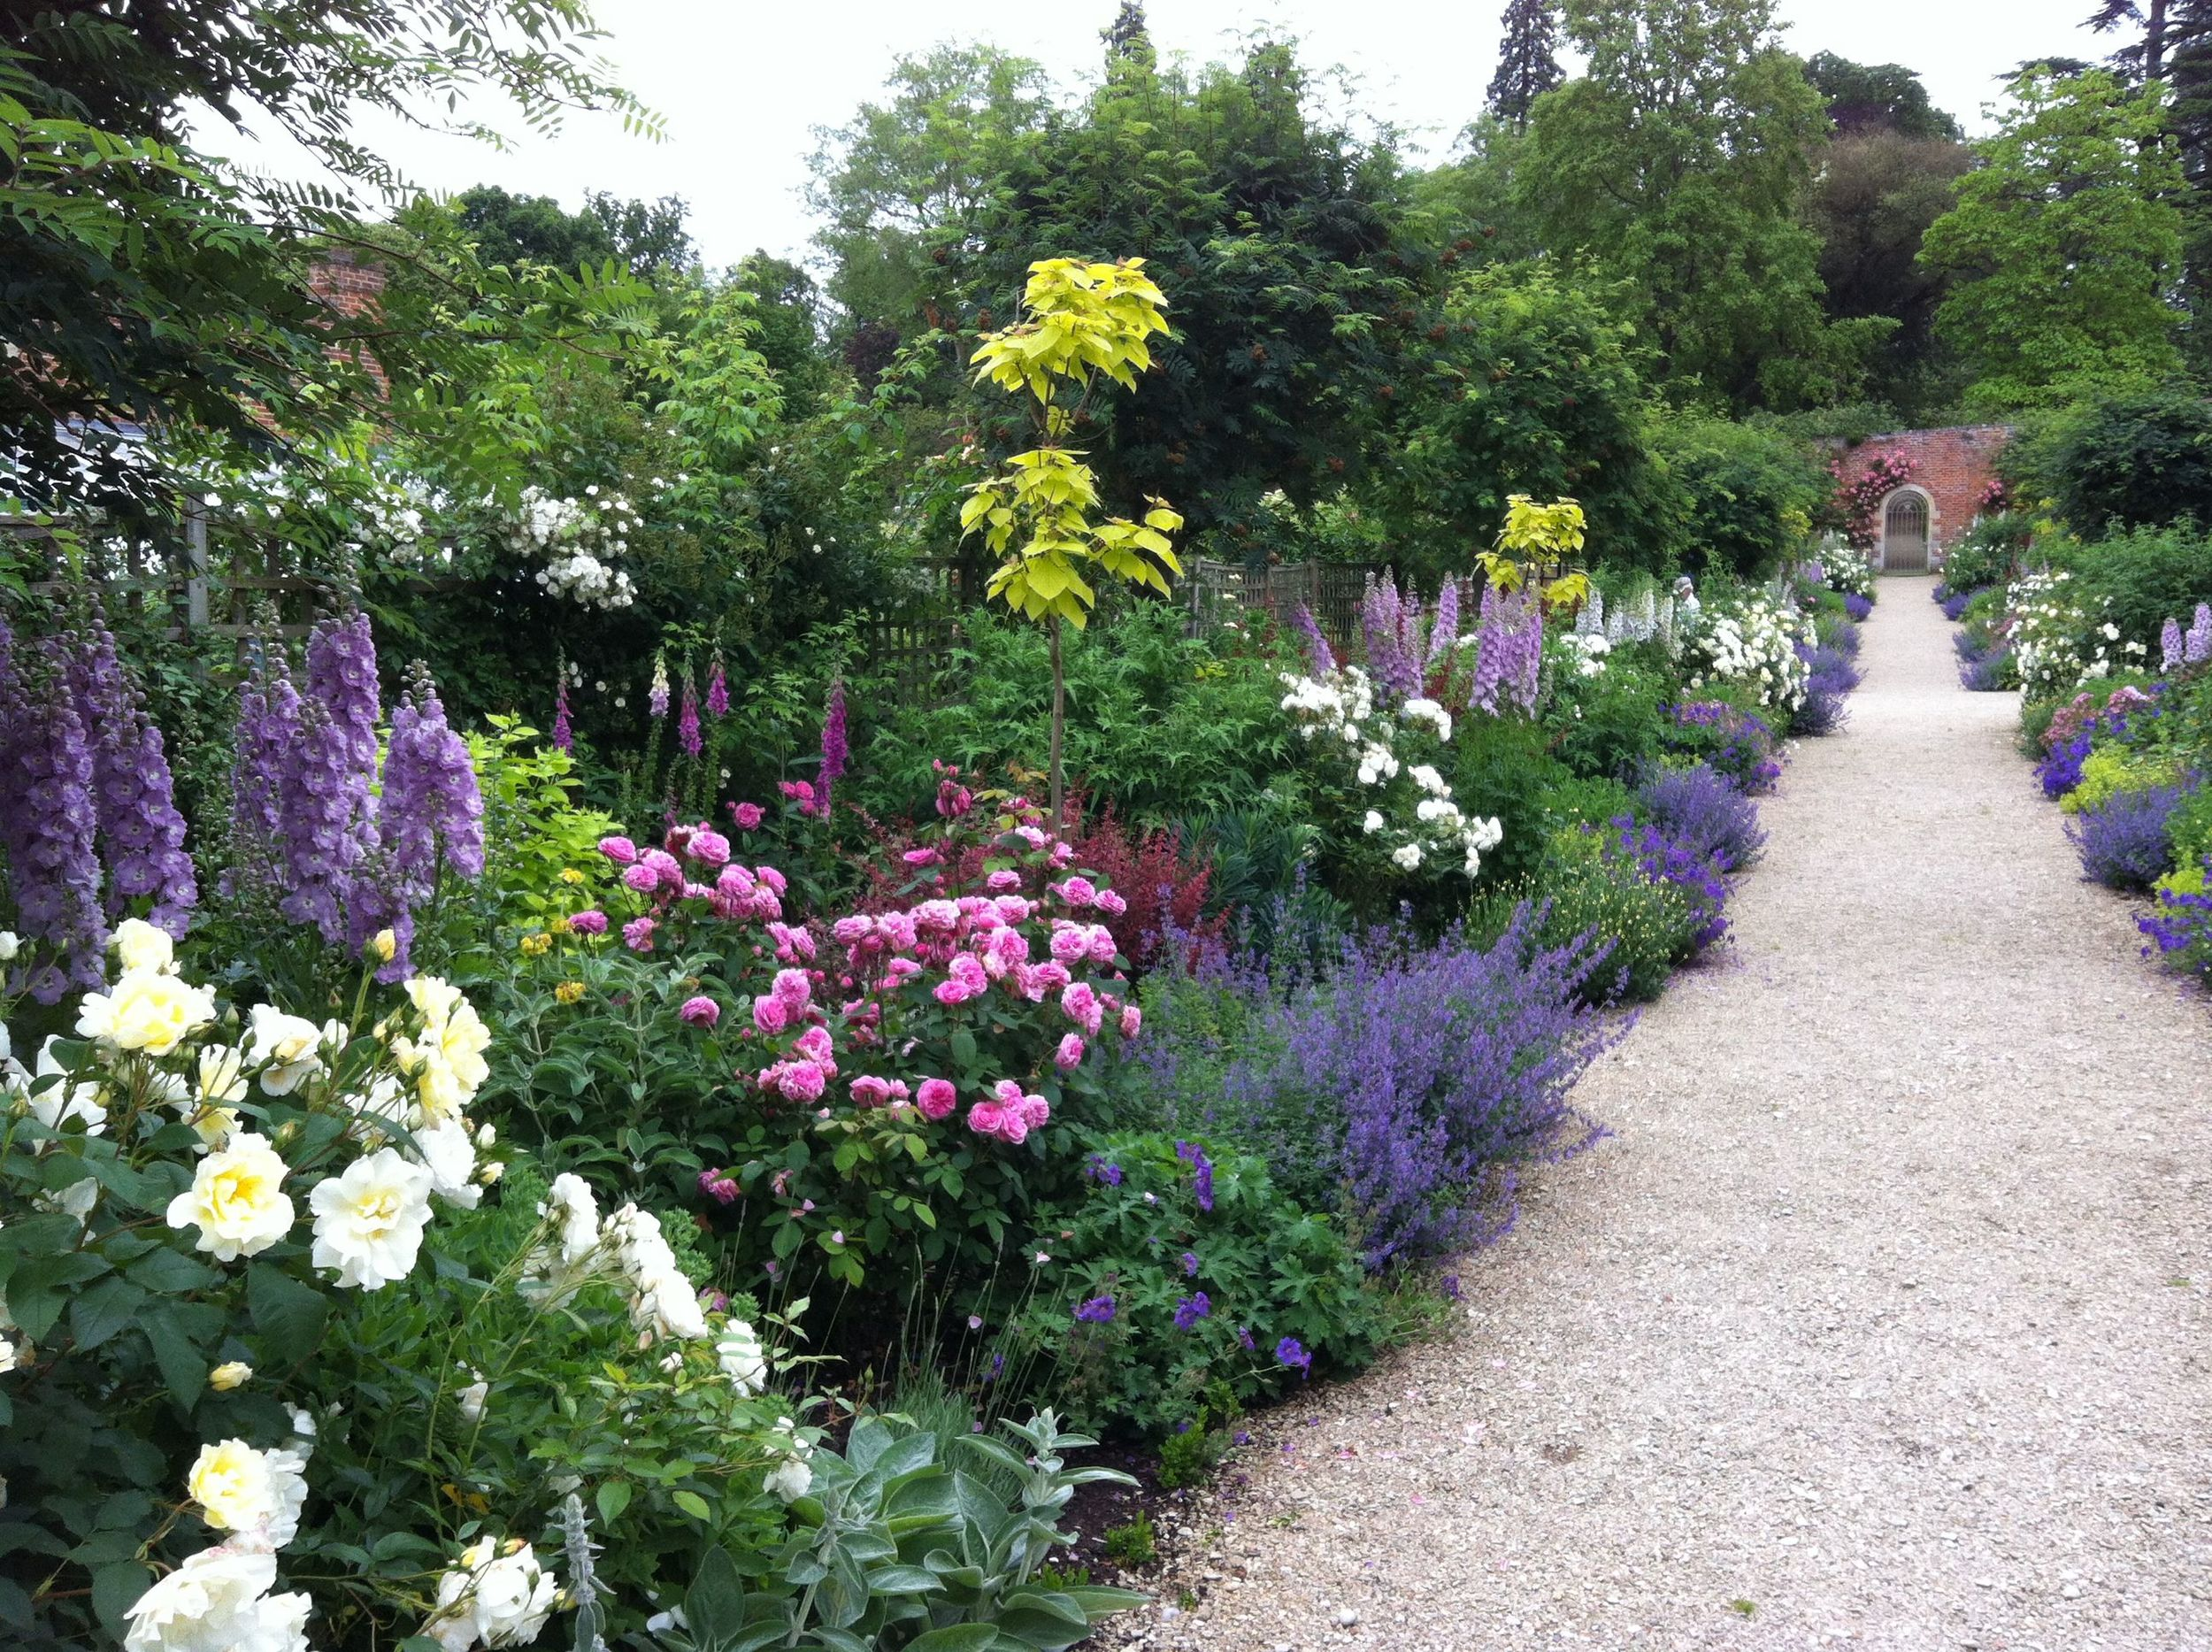 The Peter Coats Border at Buscot Park - a mixed shrub and herbaceous border, producing colour from tulip season through to Autumn shades.